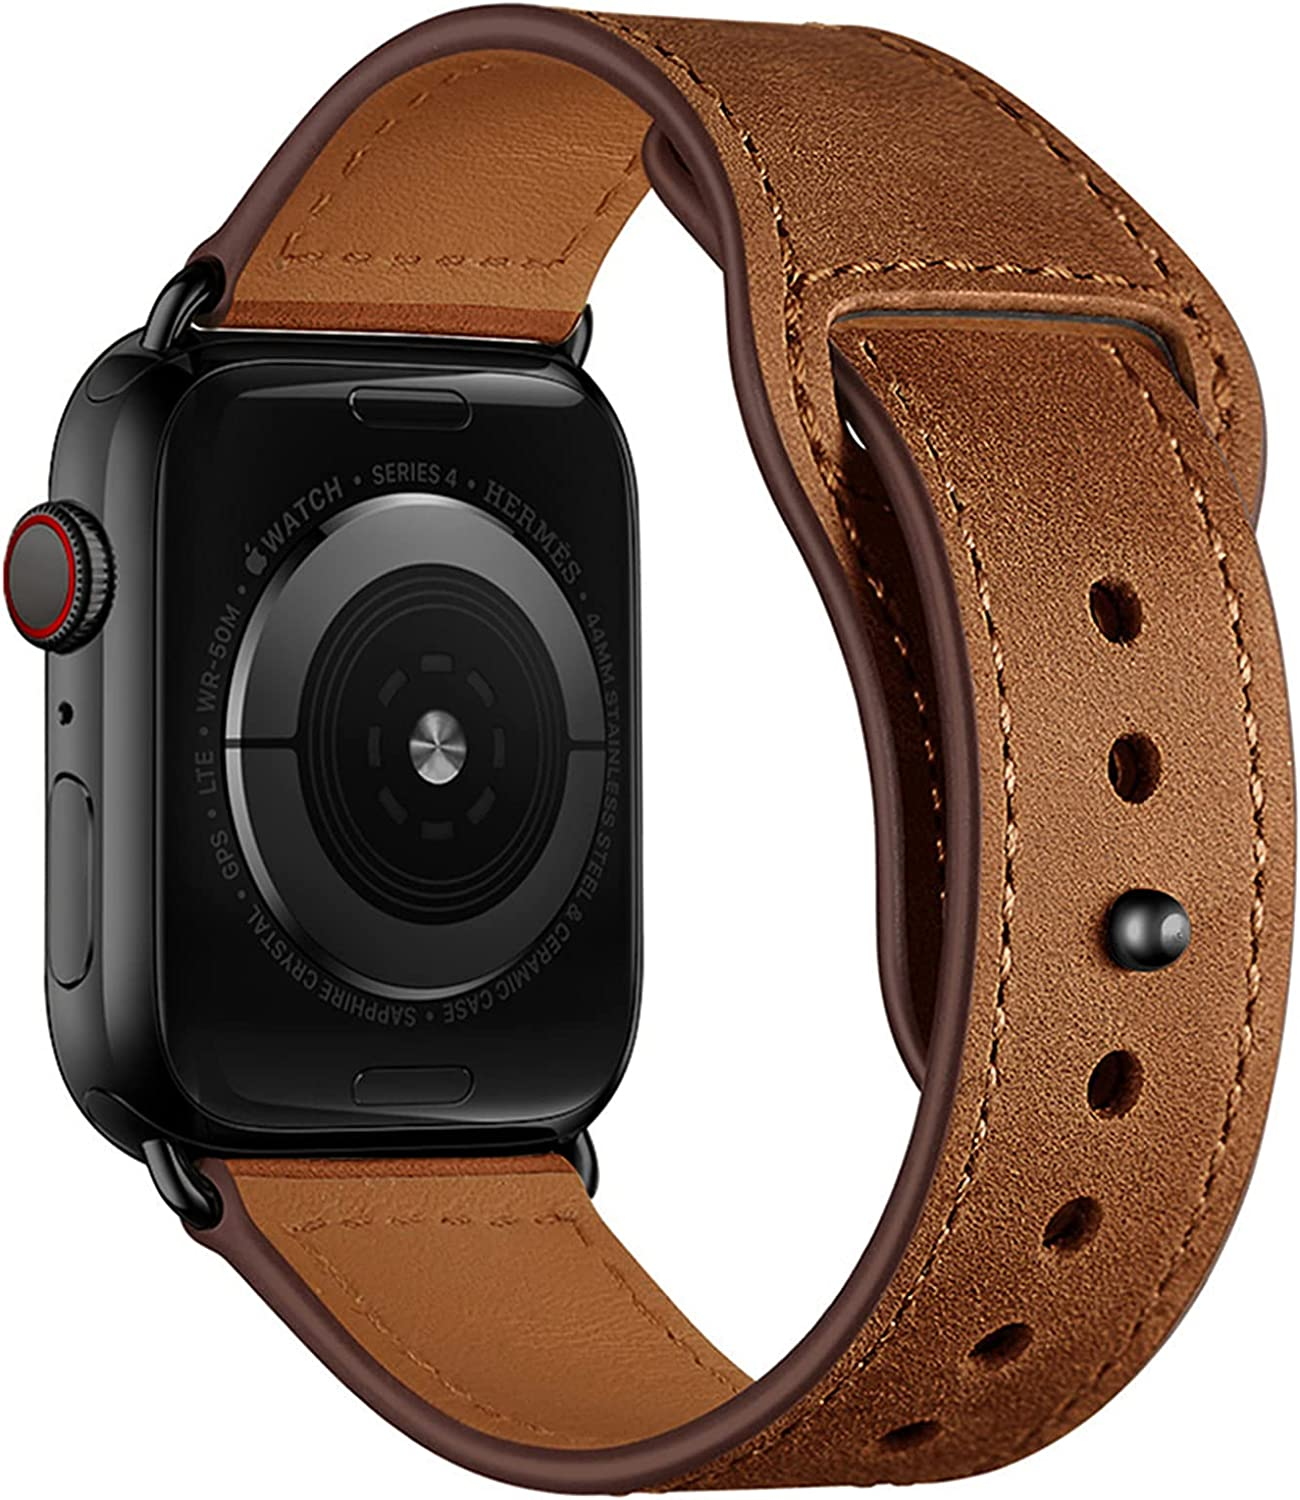 YALOCEA Leather Bands Compatible with Apple Watch Band 44mm 42mm 40mm 38mm, Top Grain Genuine Leather Strap Replacement for iWatch SE Series 6 5 4 3 2 1 (Retro Brown/Black, 44mm 42mm)